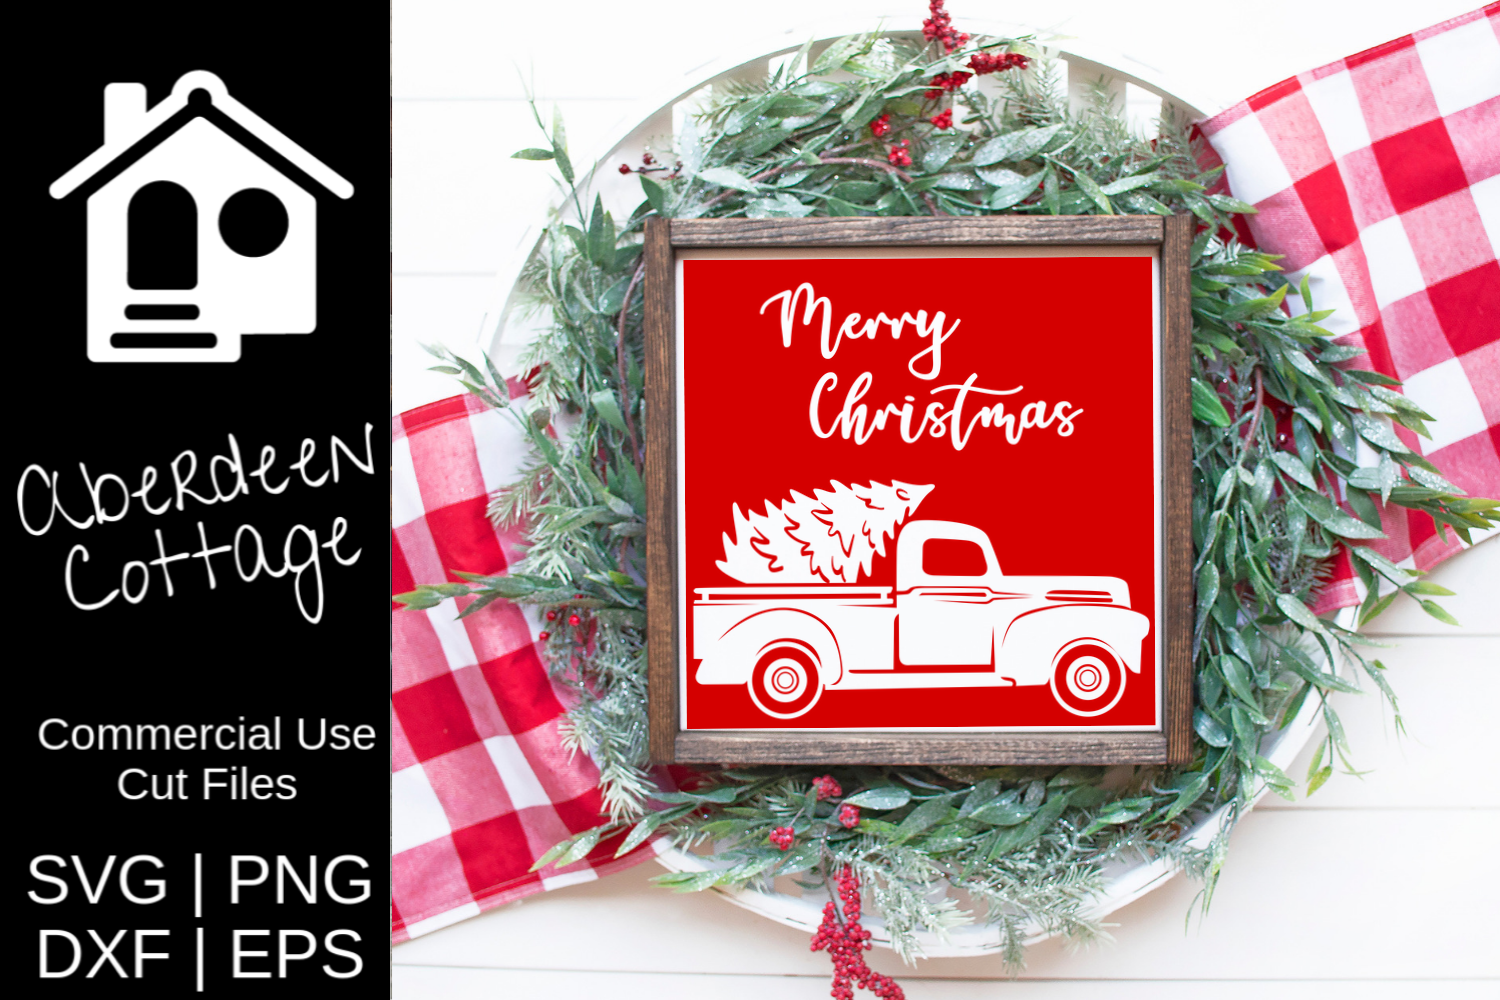 Merry Christmas Vintage Truck 2 SVG example image 1